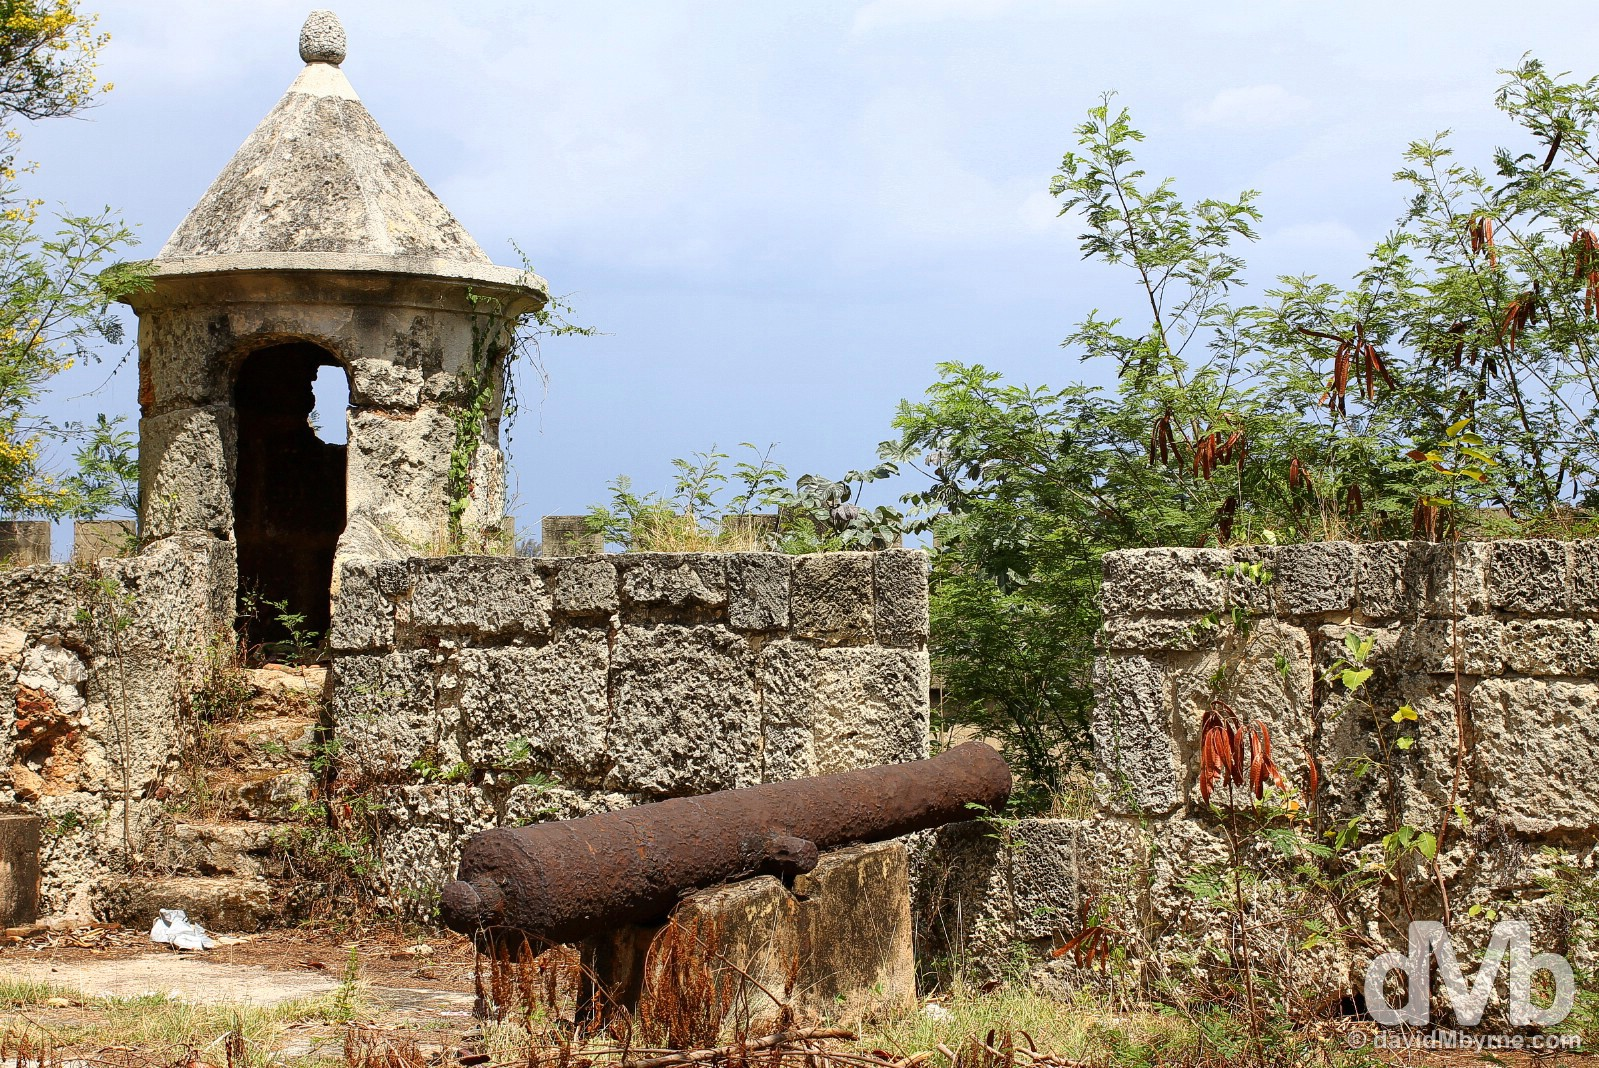 Fortaleza Ozama (Ozama Fortress) in Santo Domingo, Dominican Republic. May 26, 2015.